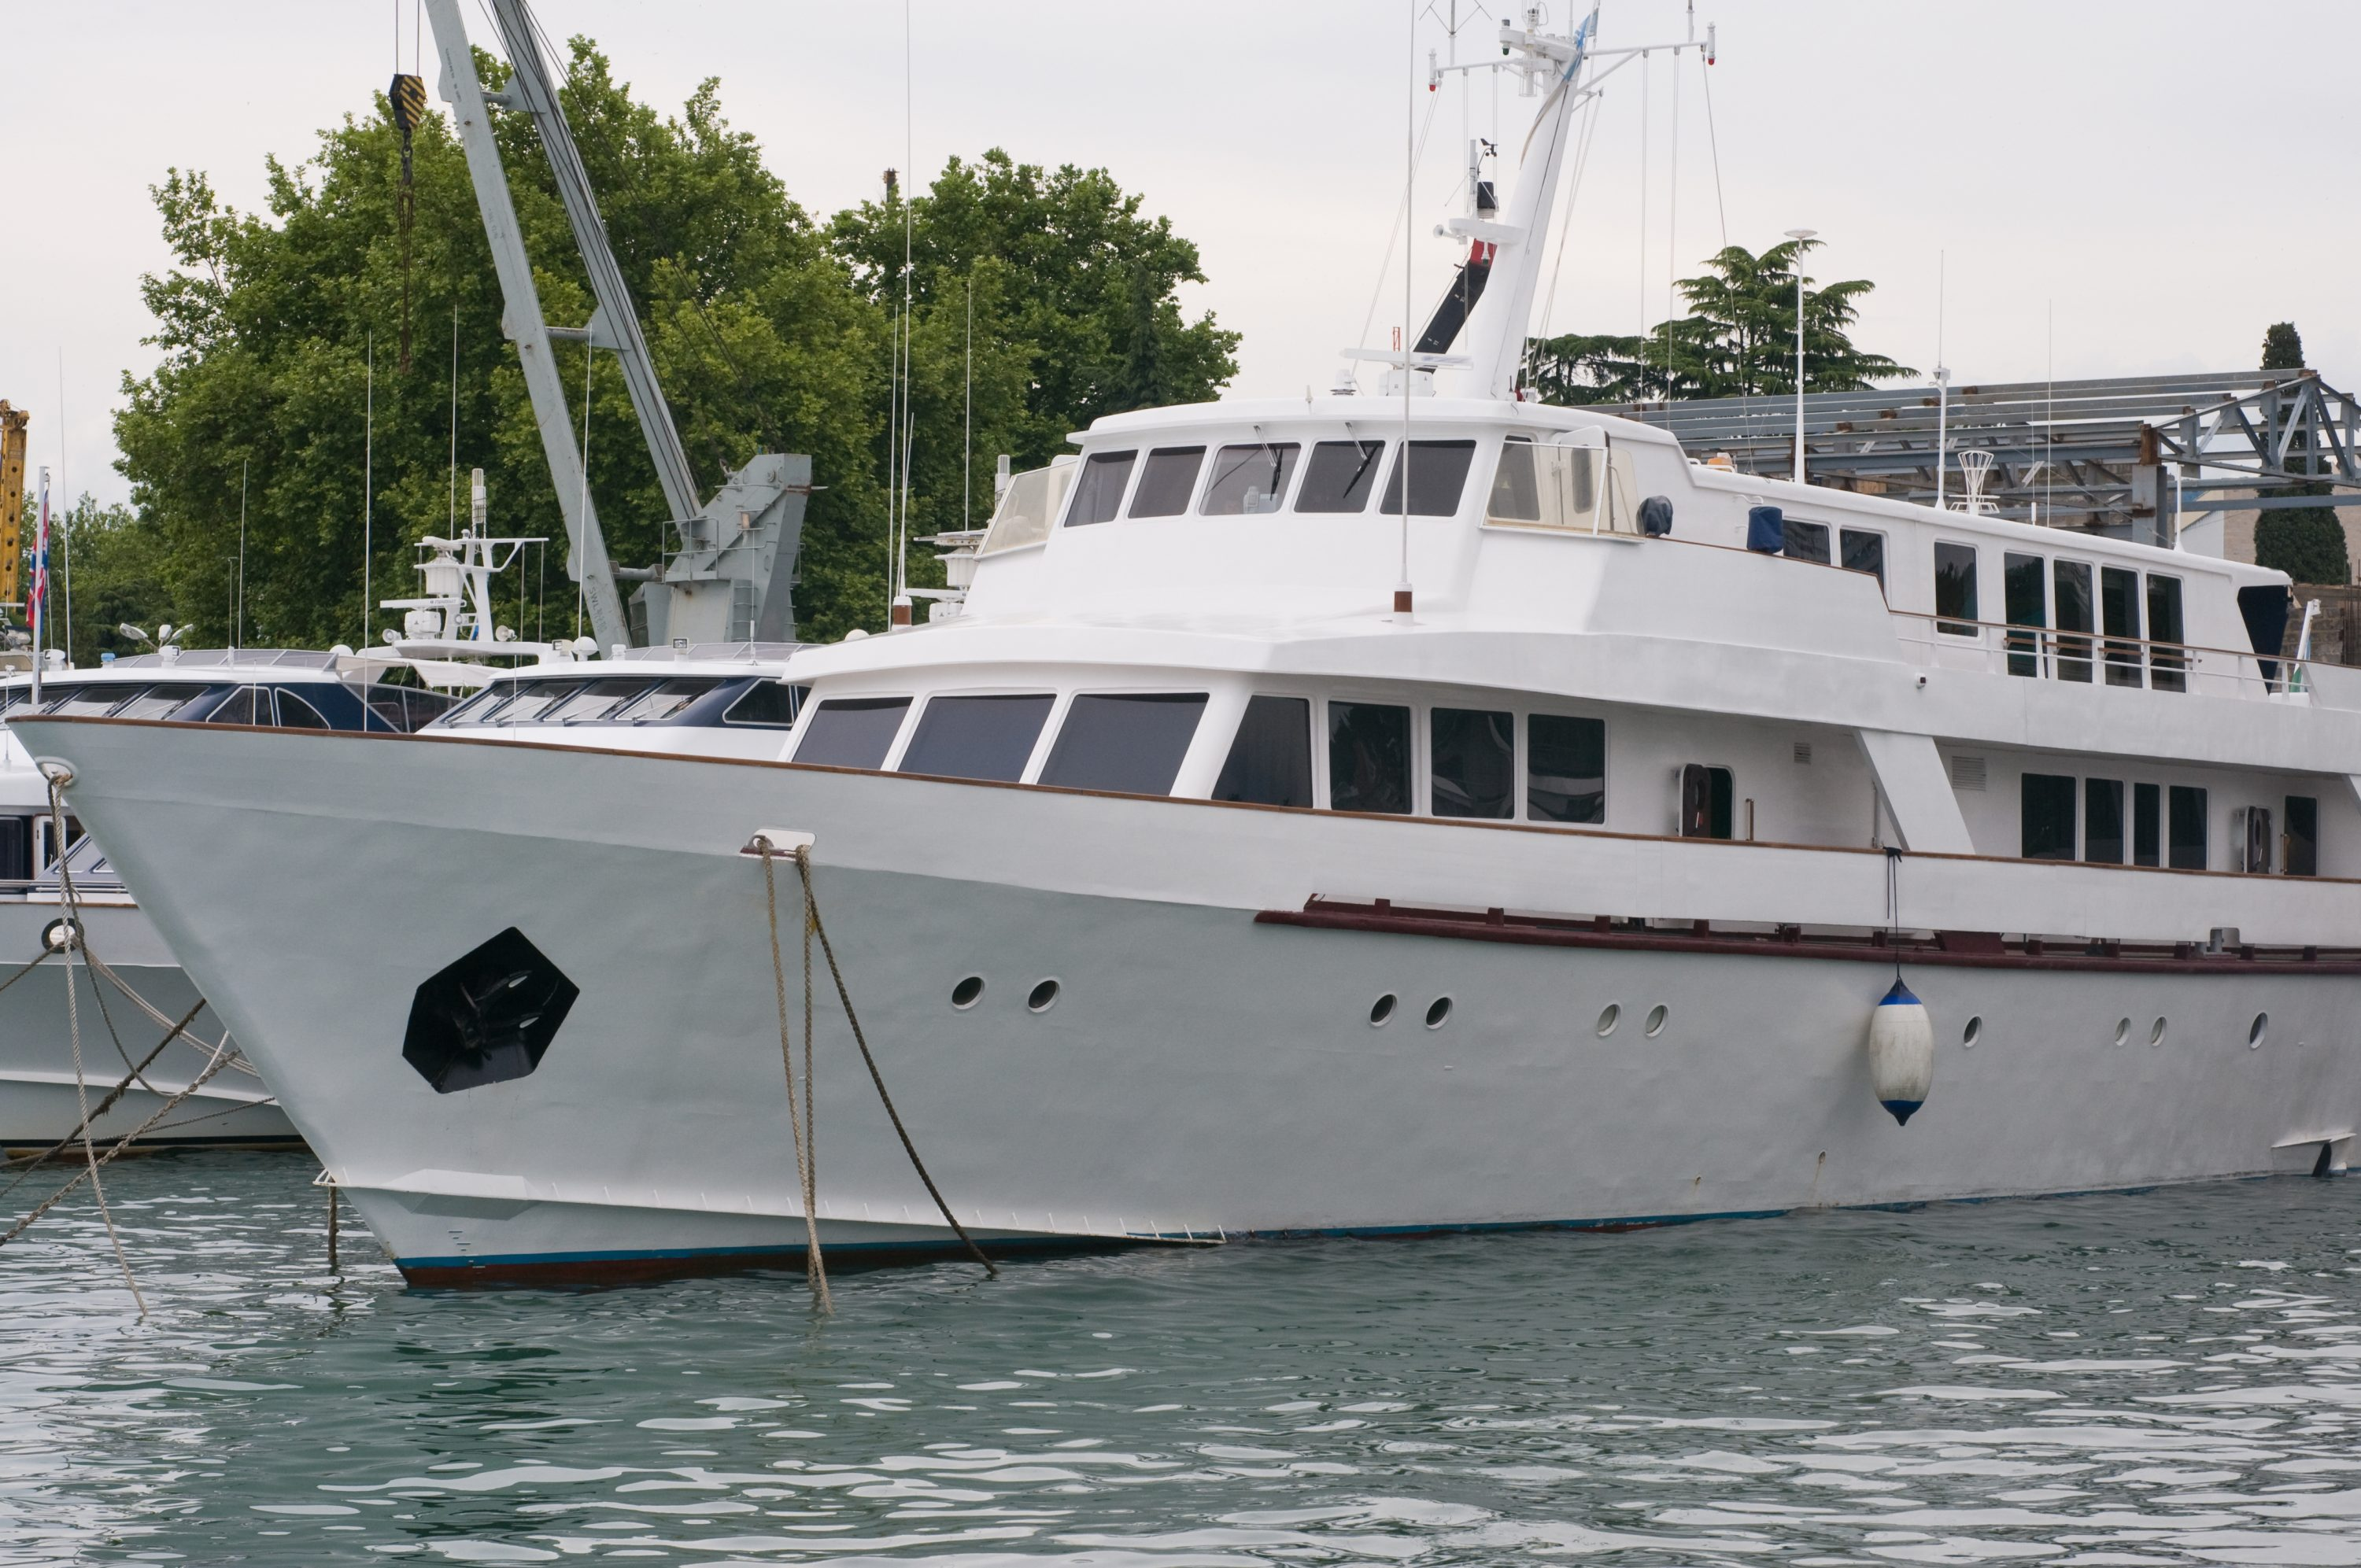 Charter Boat Injuries and Accidents